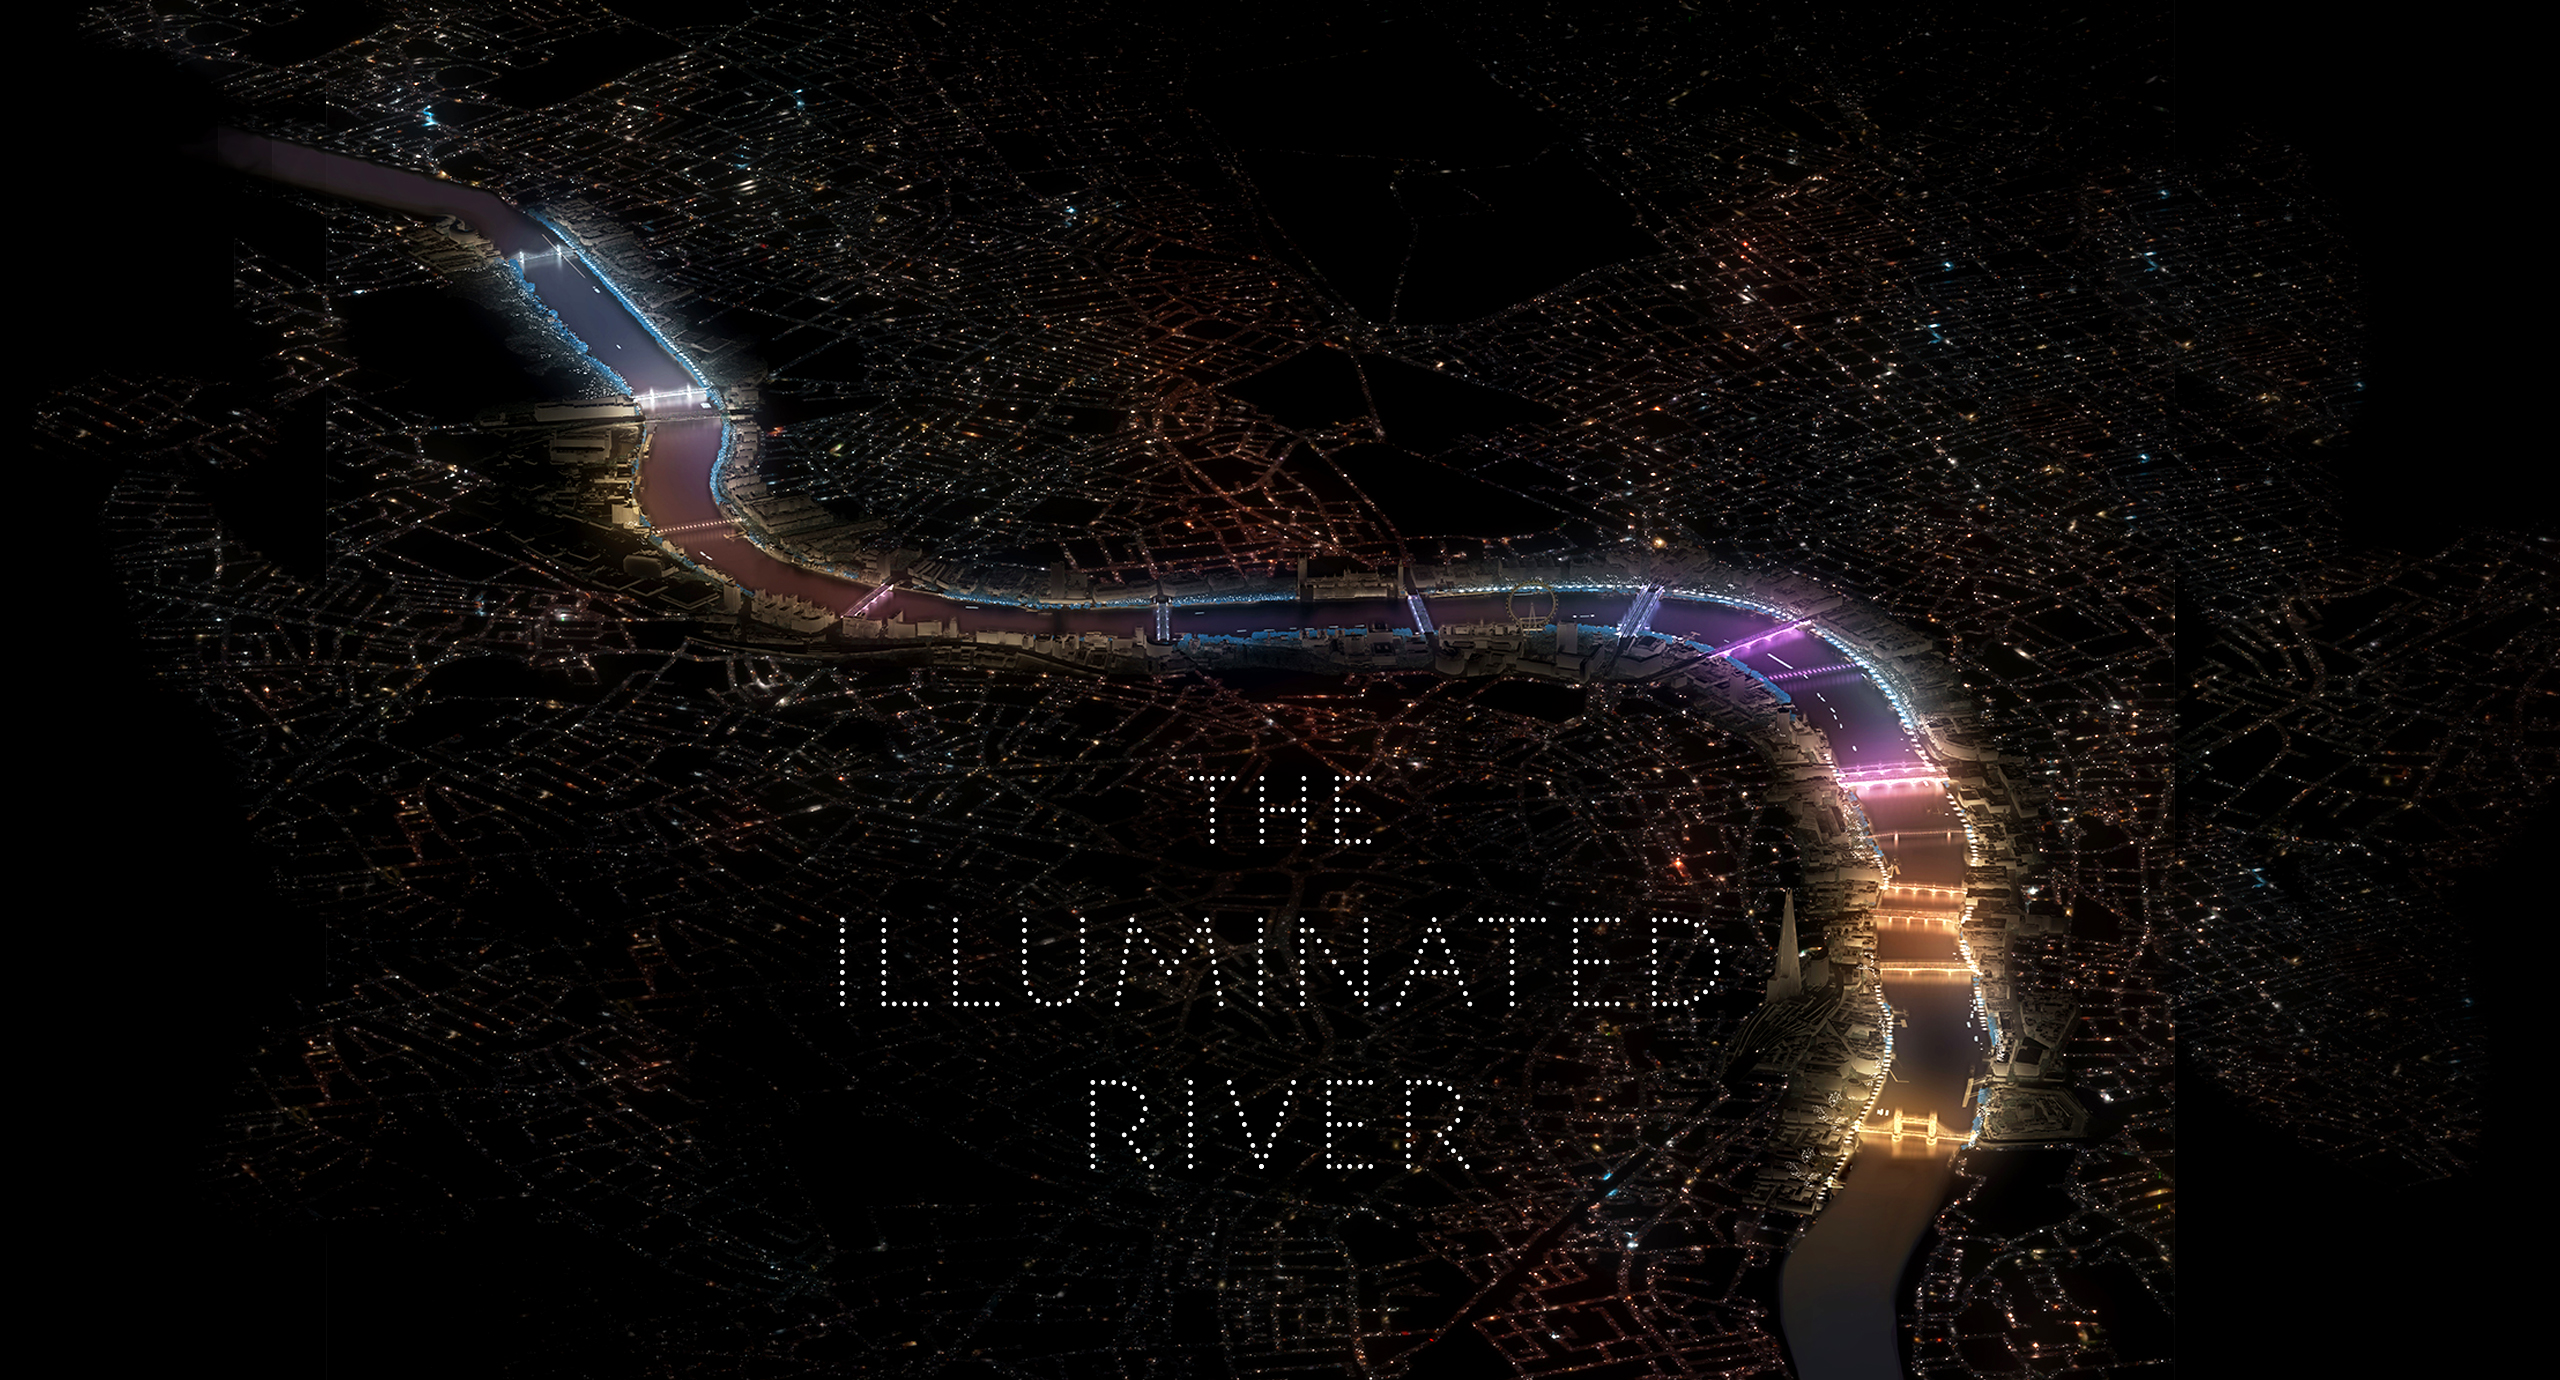 Baxter & Bailey - The Illuminated River